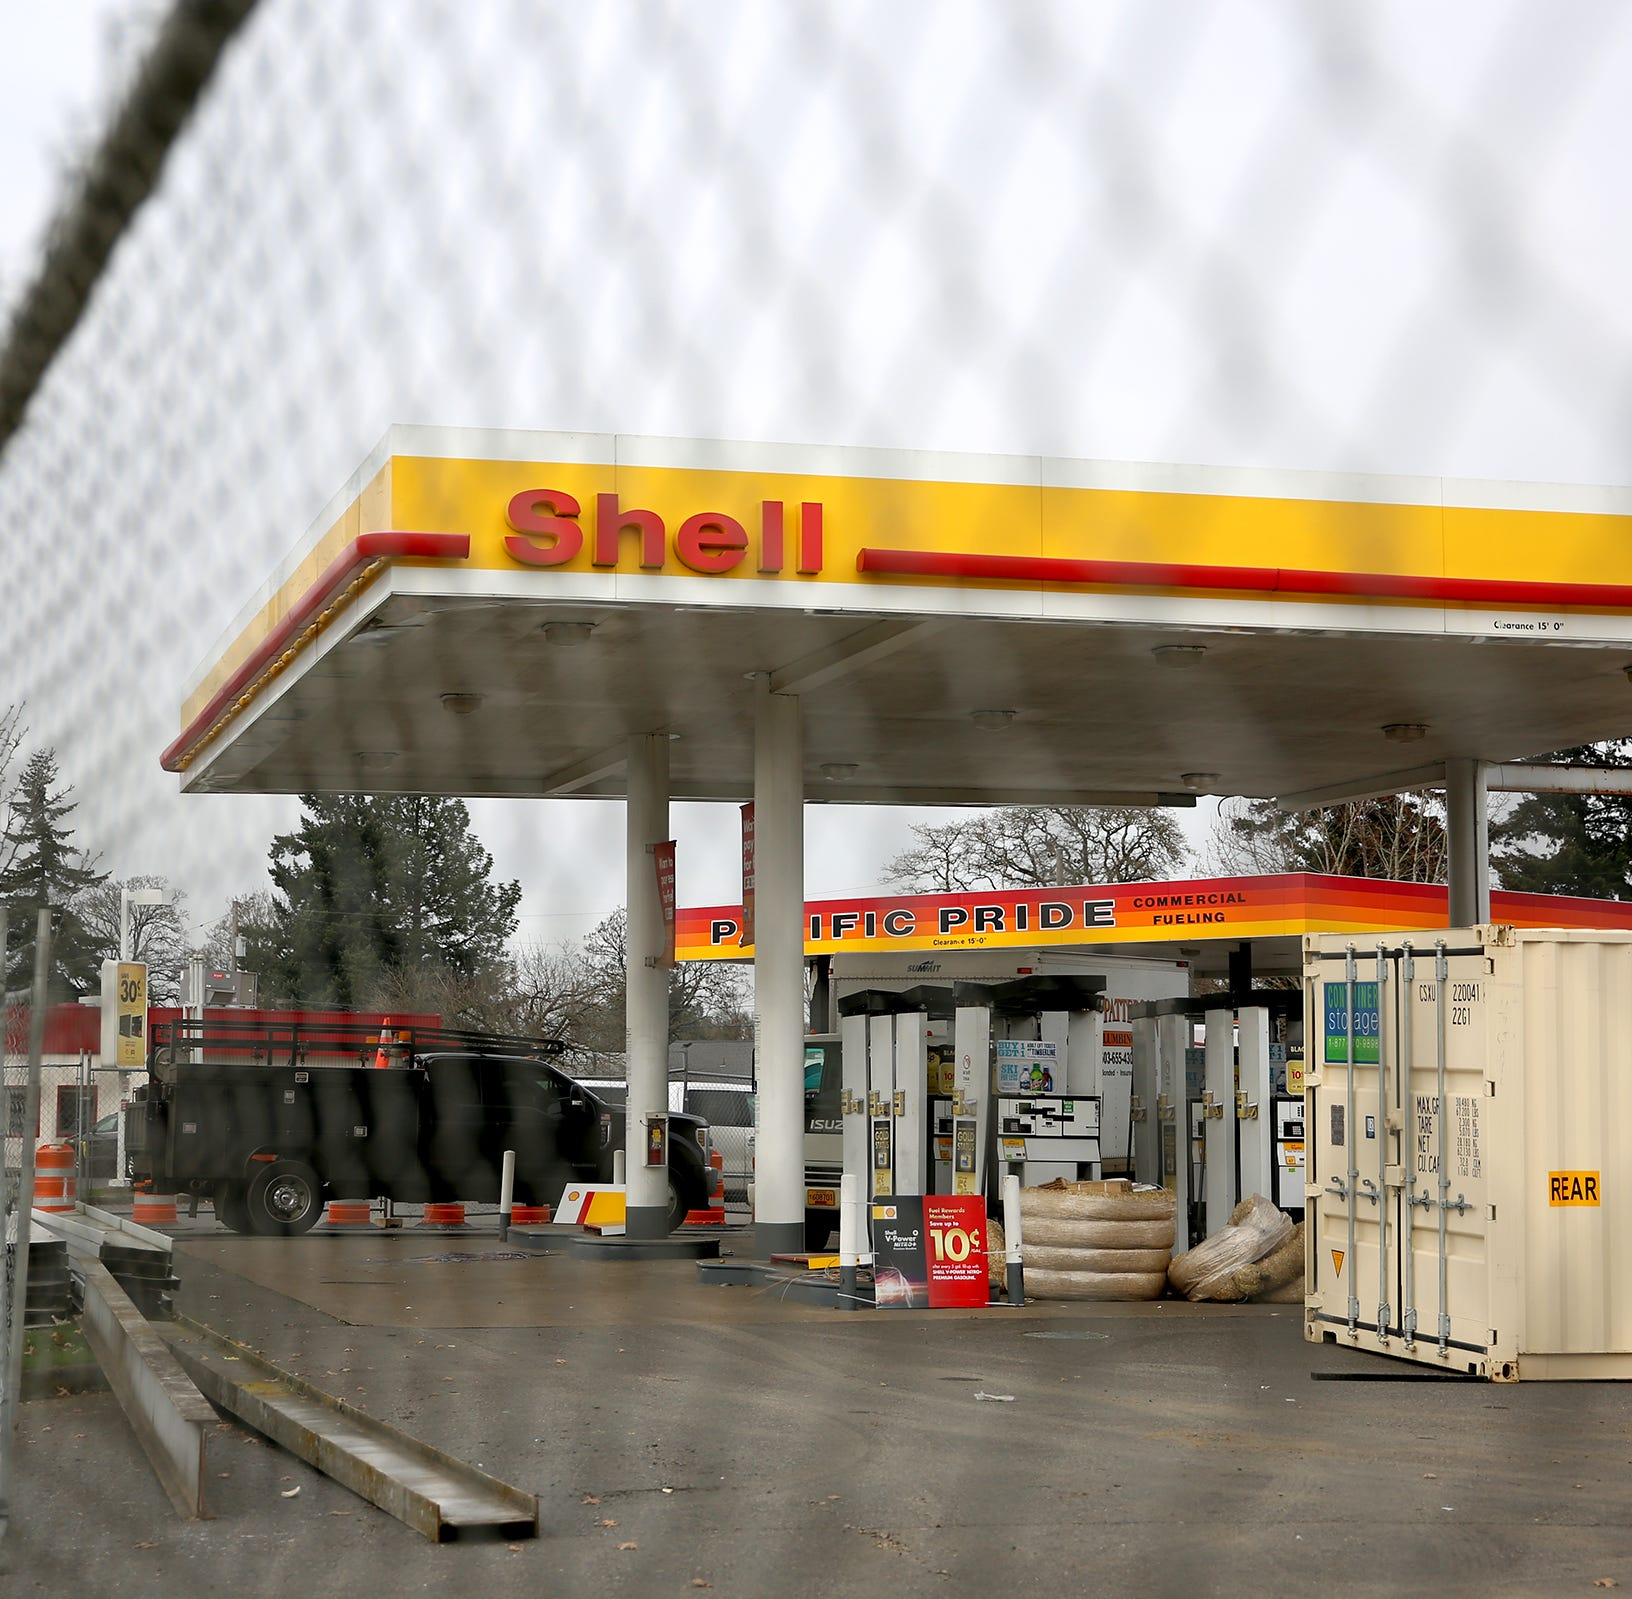 What's going on at the Shell station at Mission and 25th streets?